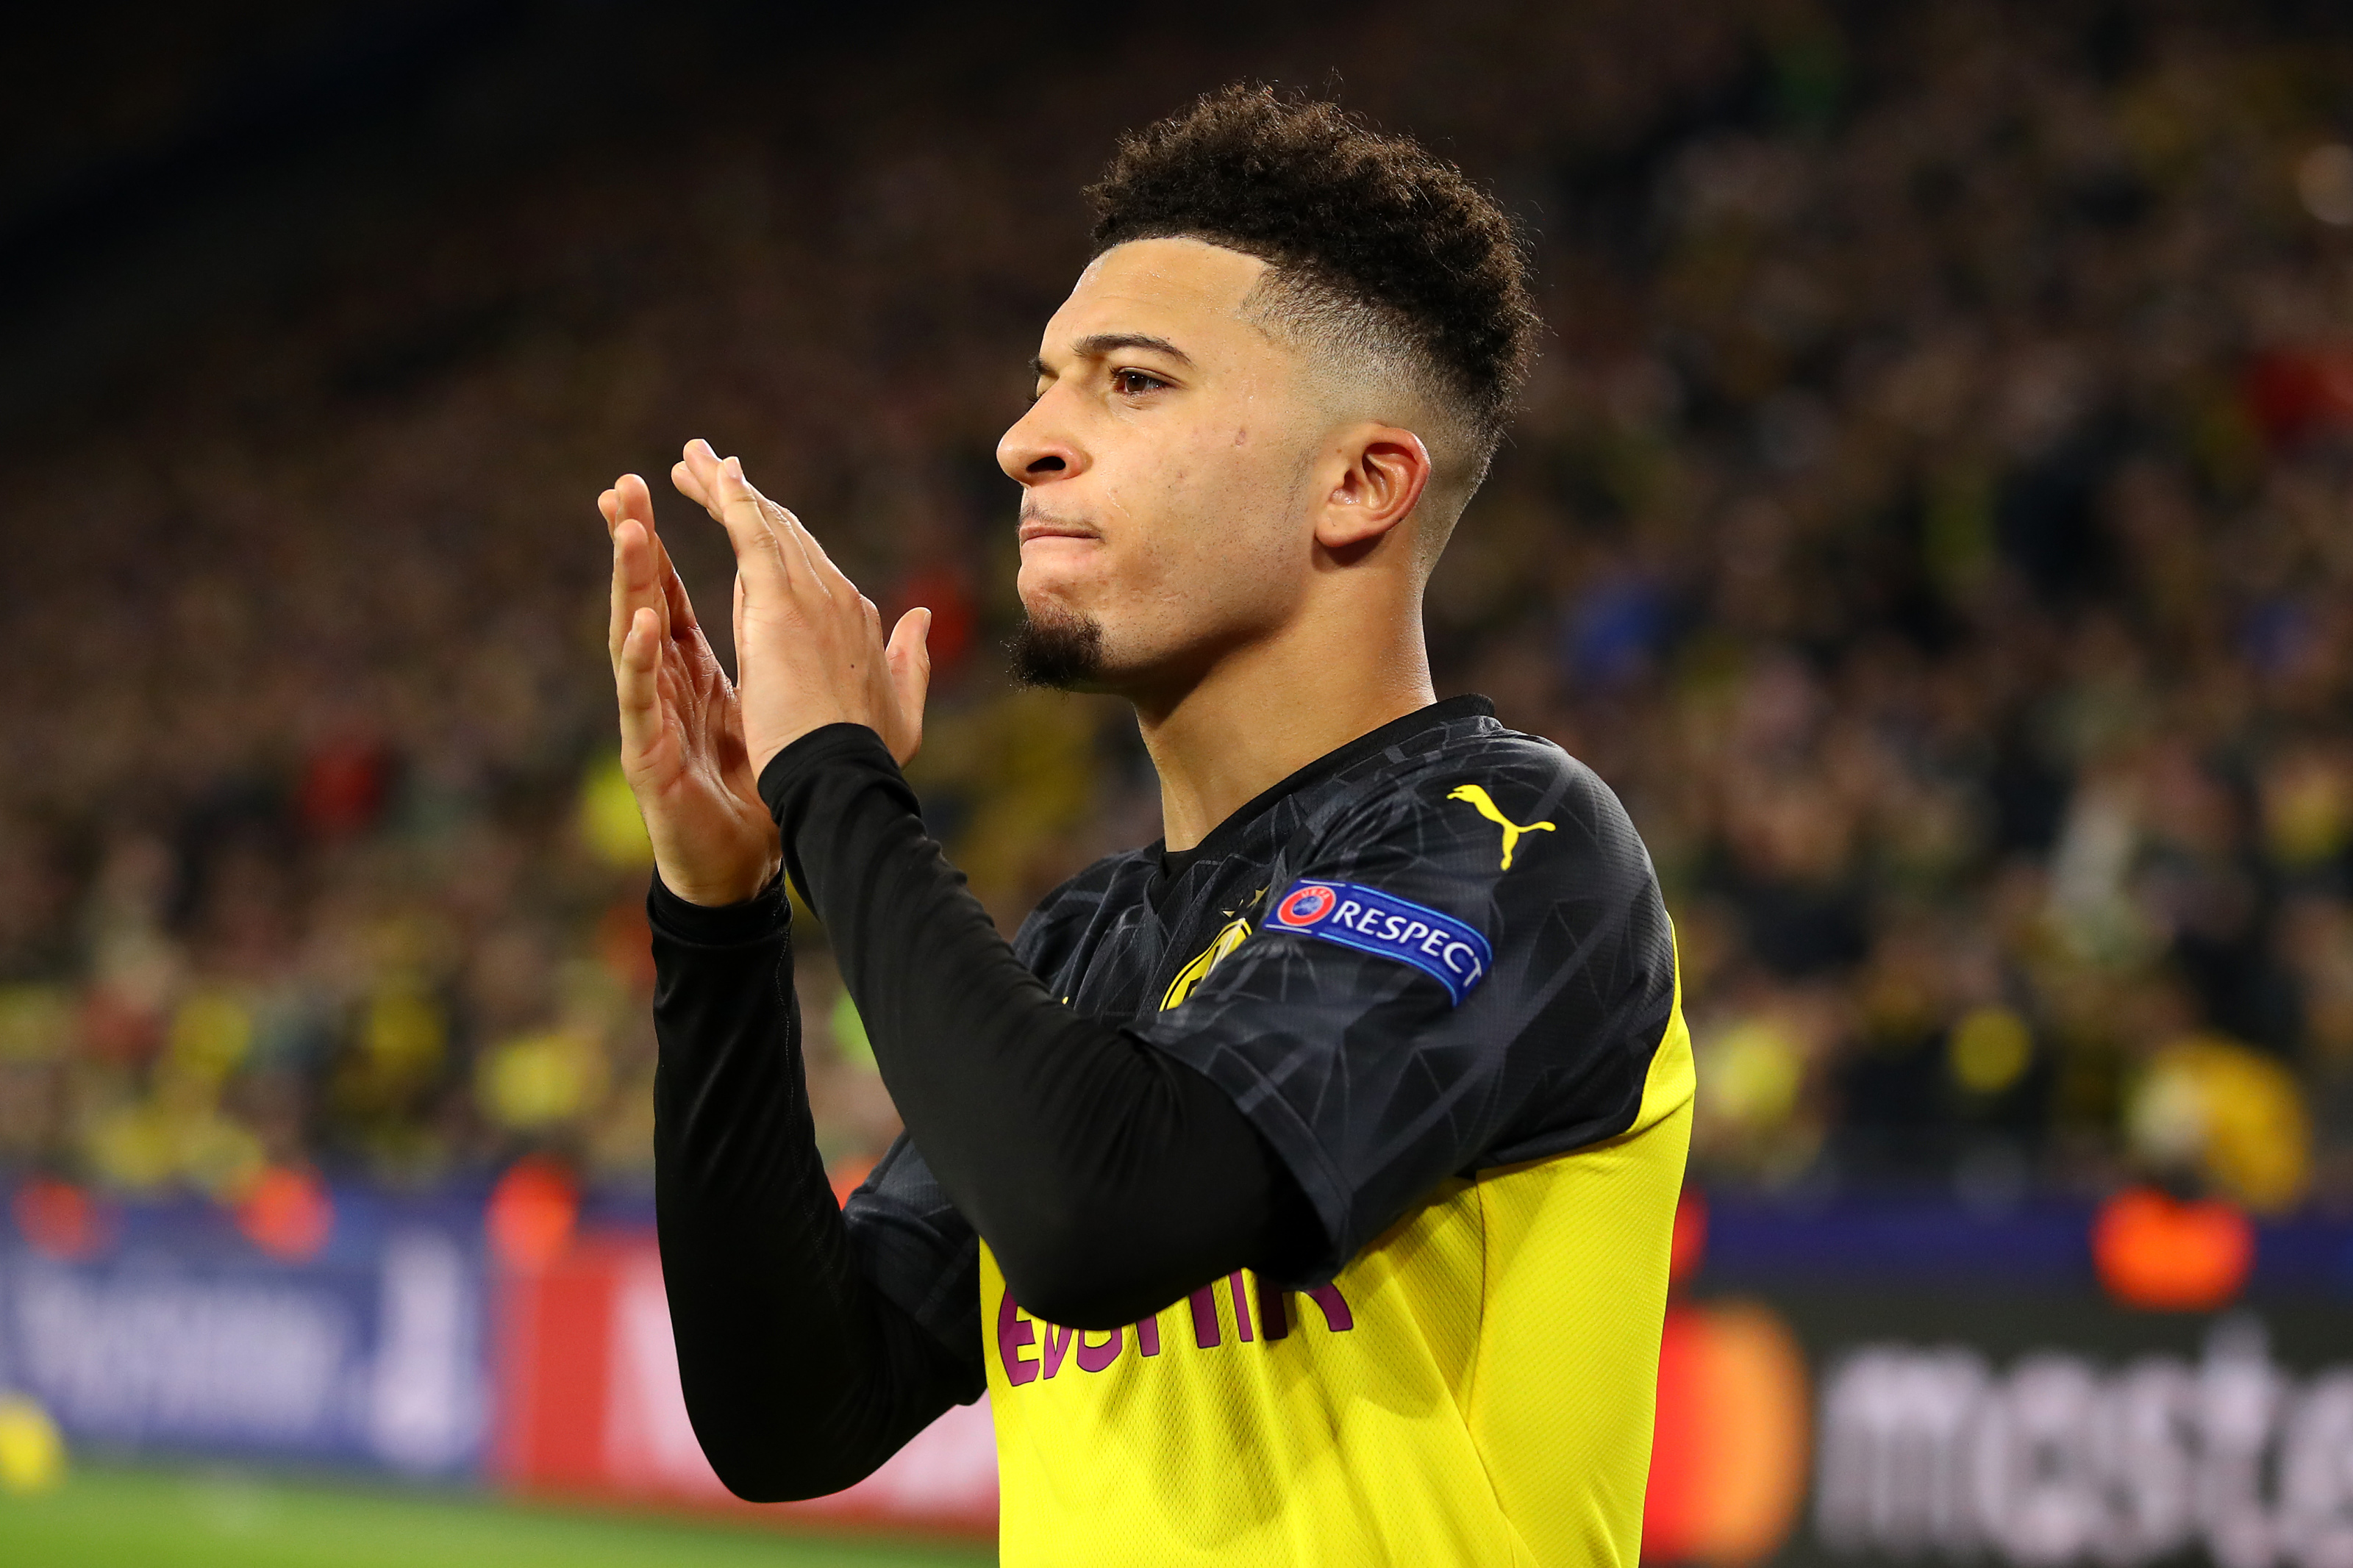 Could this be confirmation of Manchester United signing Sancho?